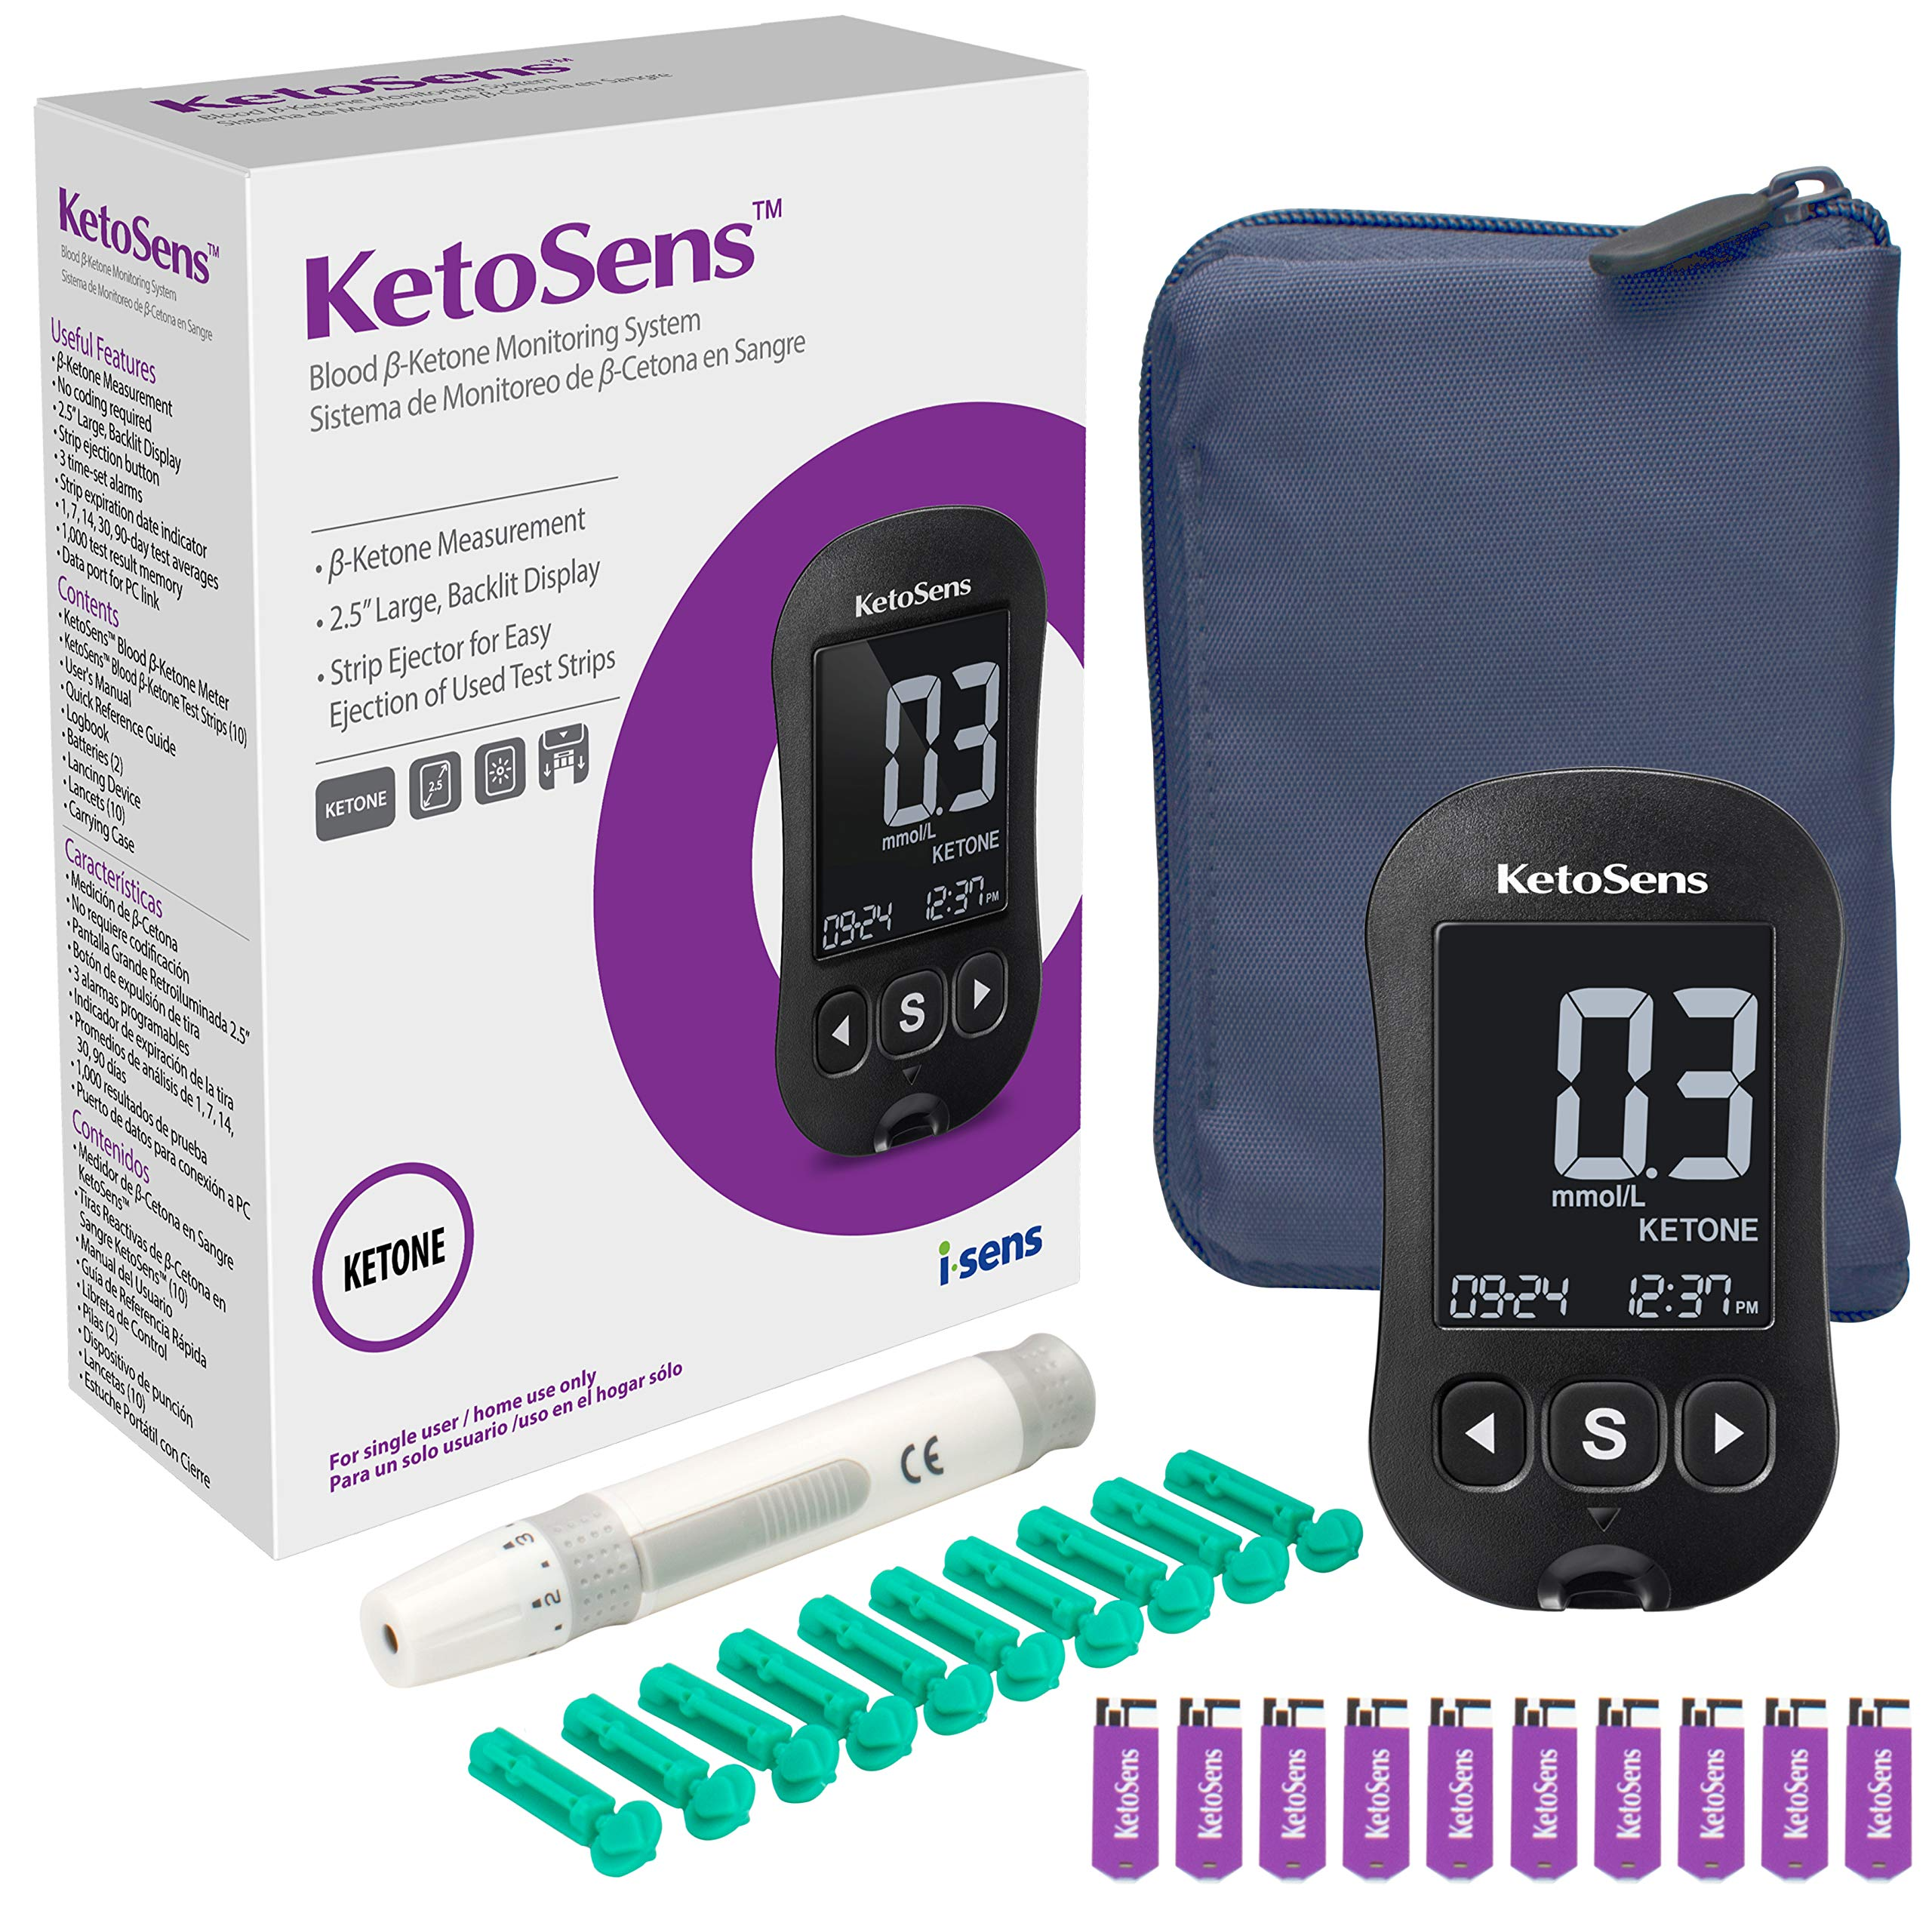 KetoSens Blood Ketone Monitor Kit with Meter, 10 Keto Test Strips, 10 Lancets, Lancing Device & Carrying Case - Ideal for Keto Diet by KetoSens